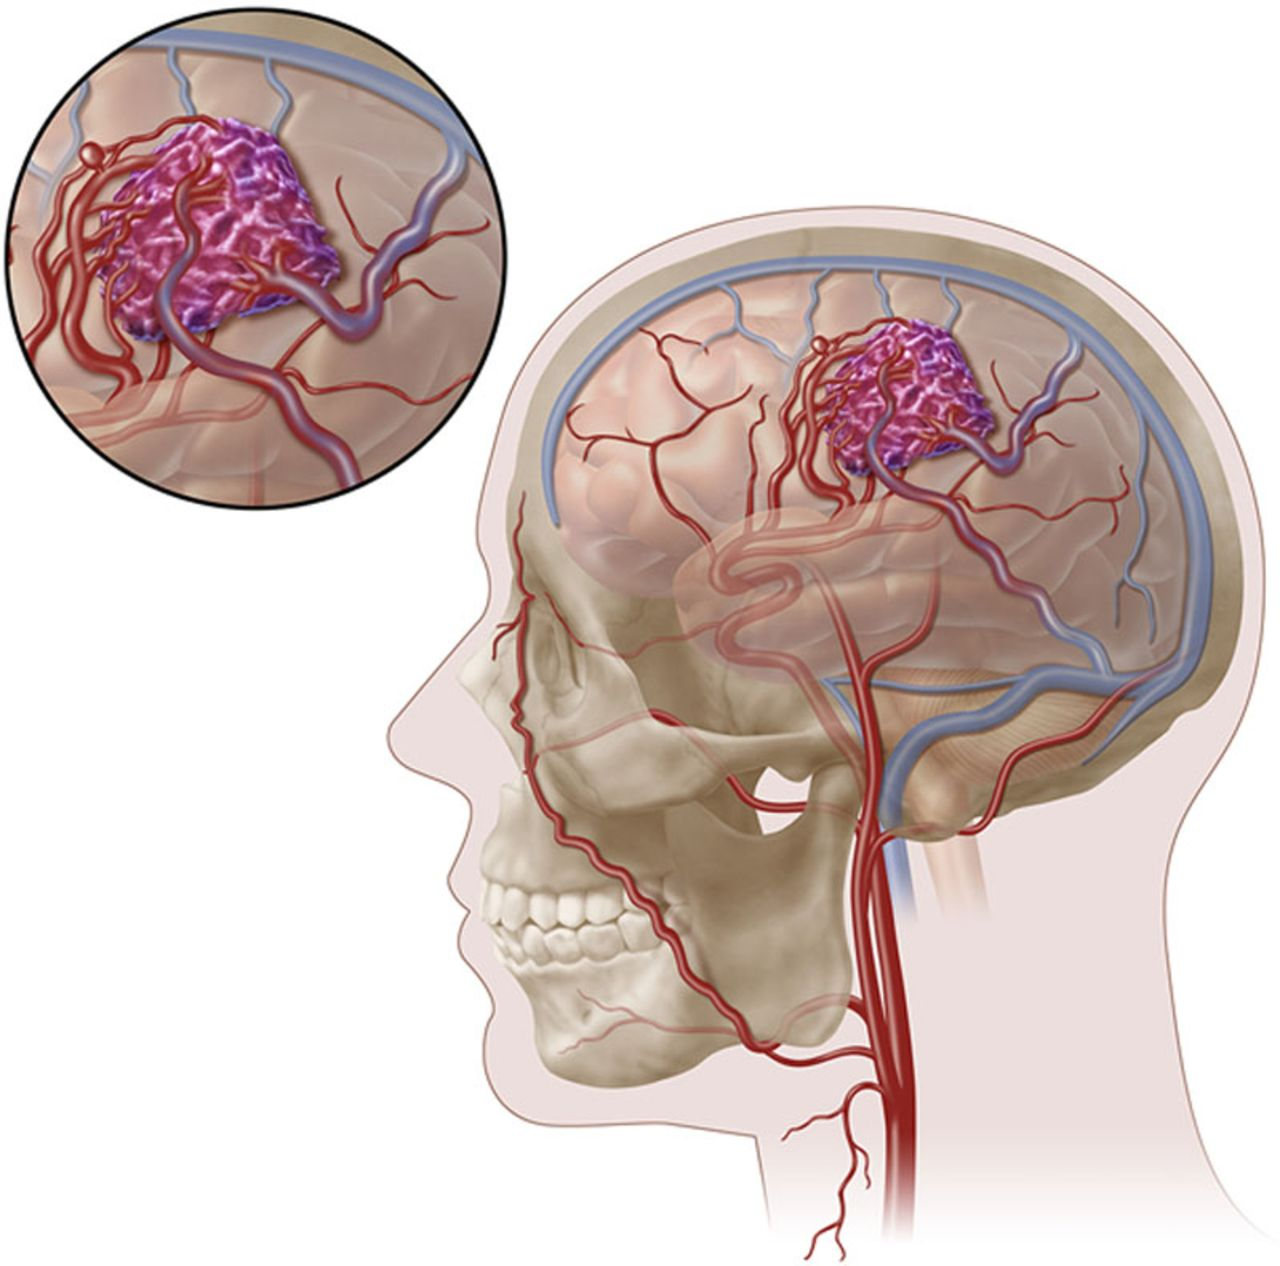 Management of Brain Arteriovenous Malformations: A Scientific